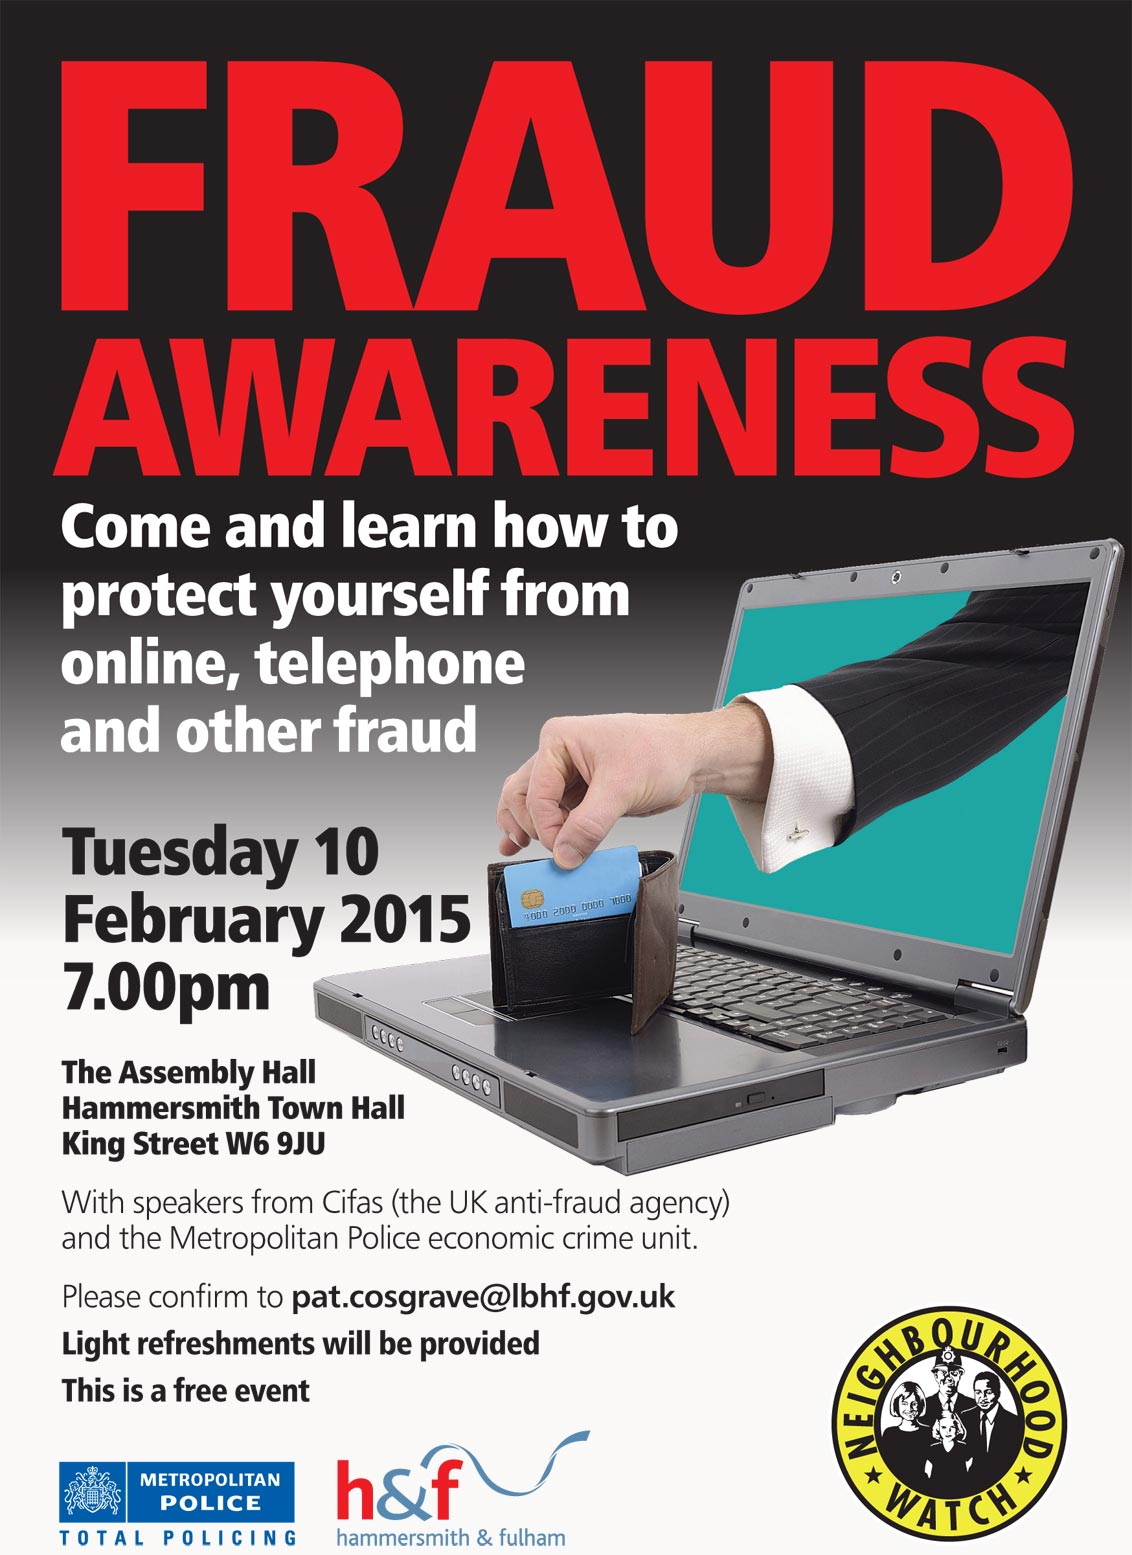 Fraud awareness event invitation